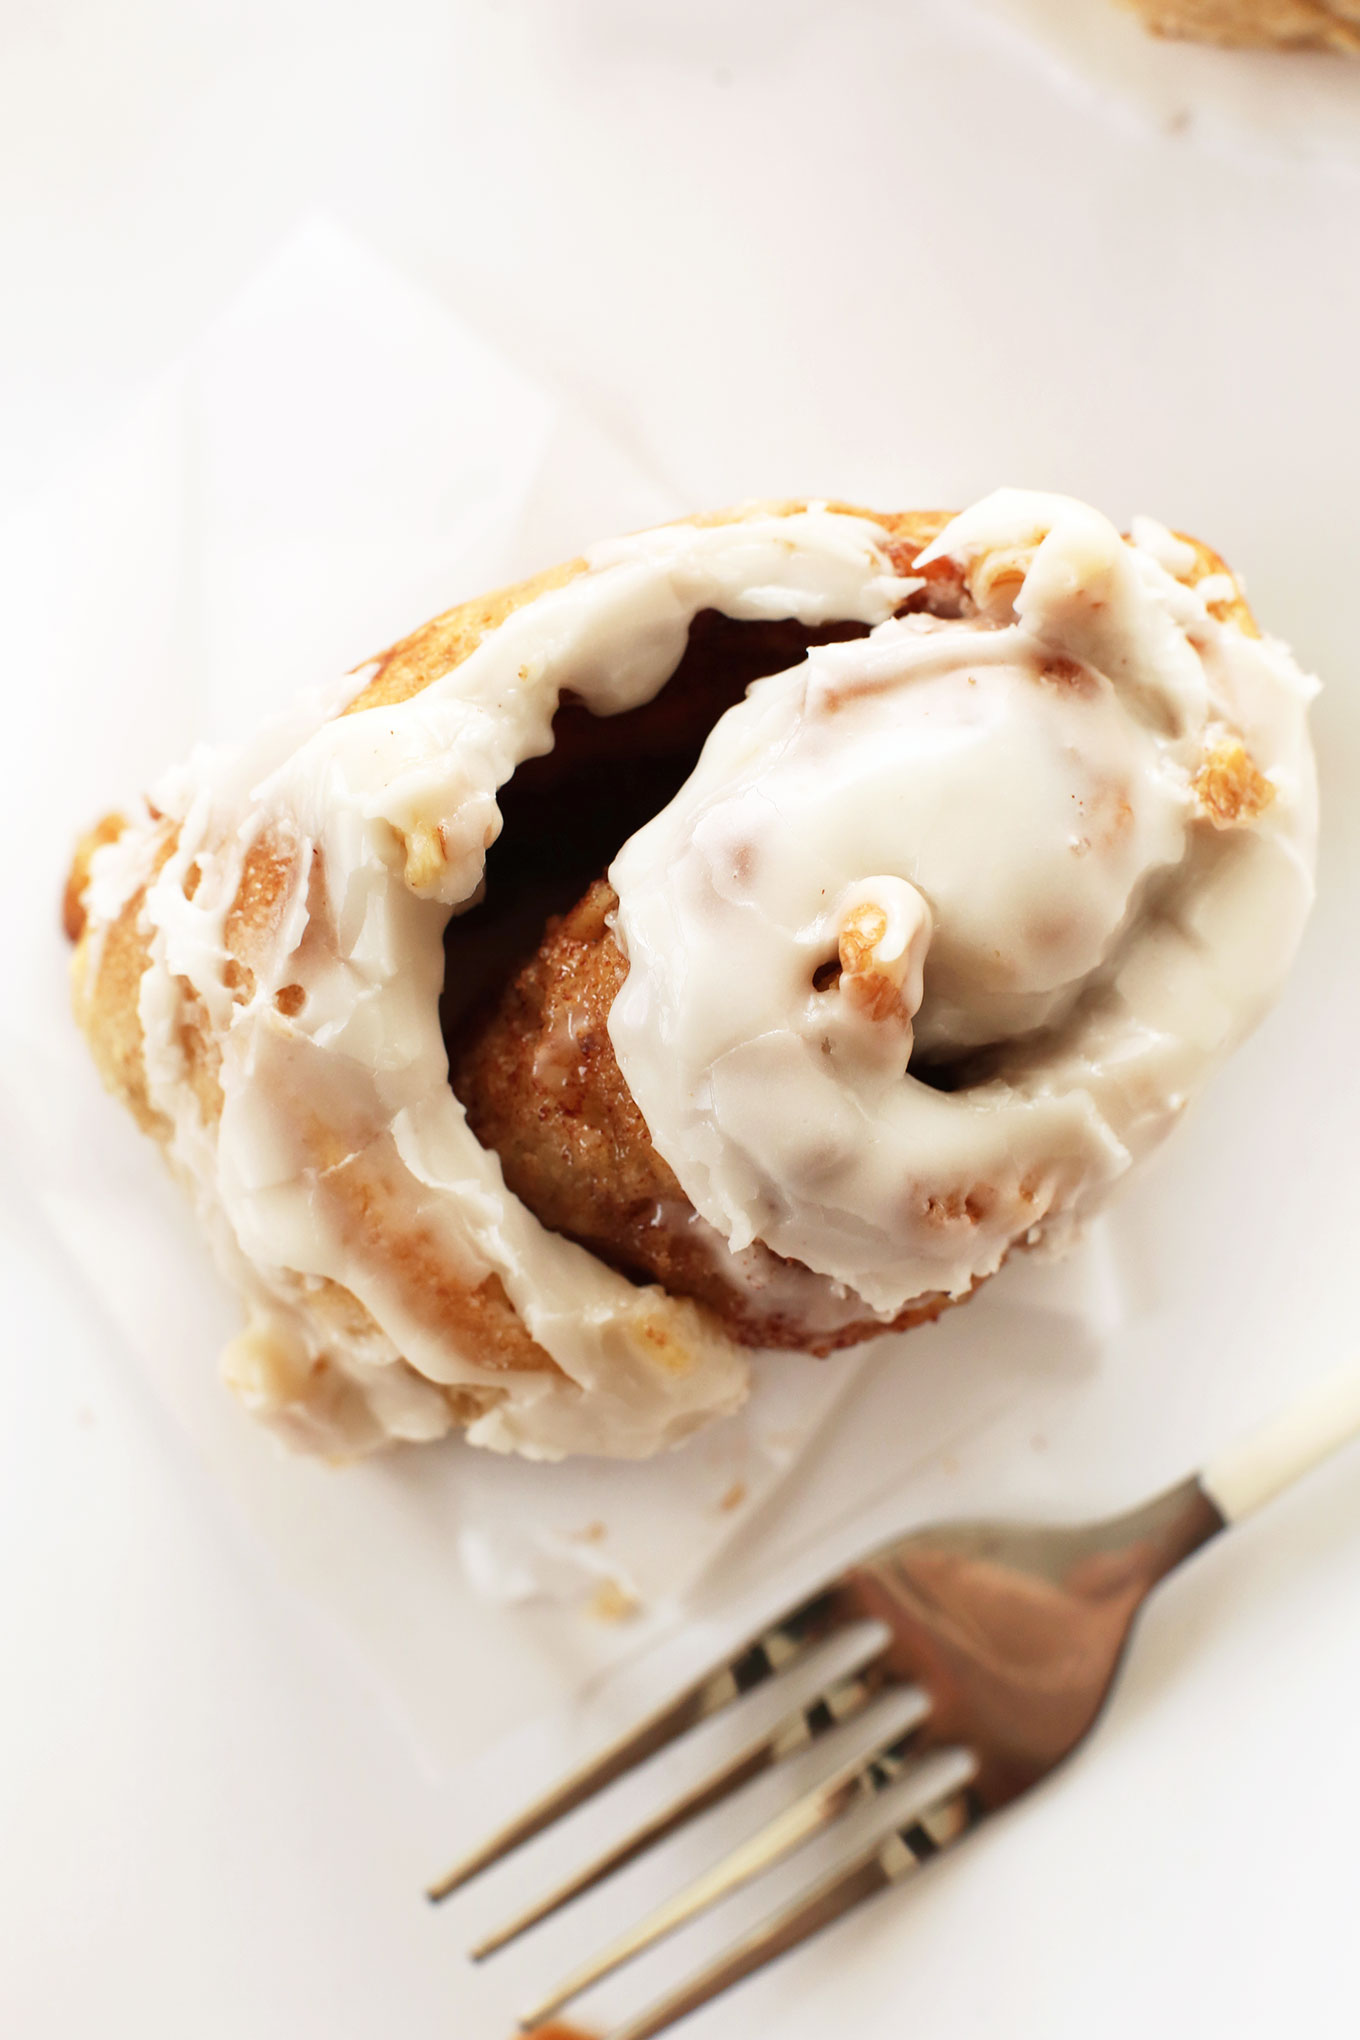 Partially unrolled gooey Banana Bread Cinnamon Roll with icing